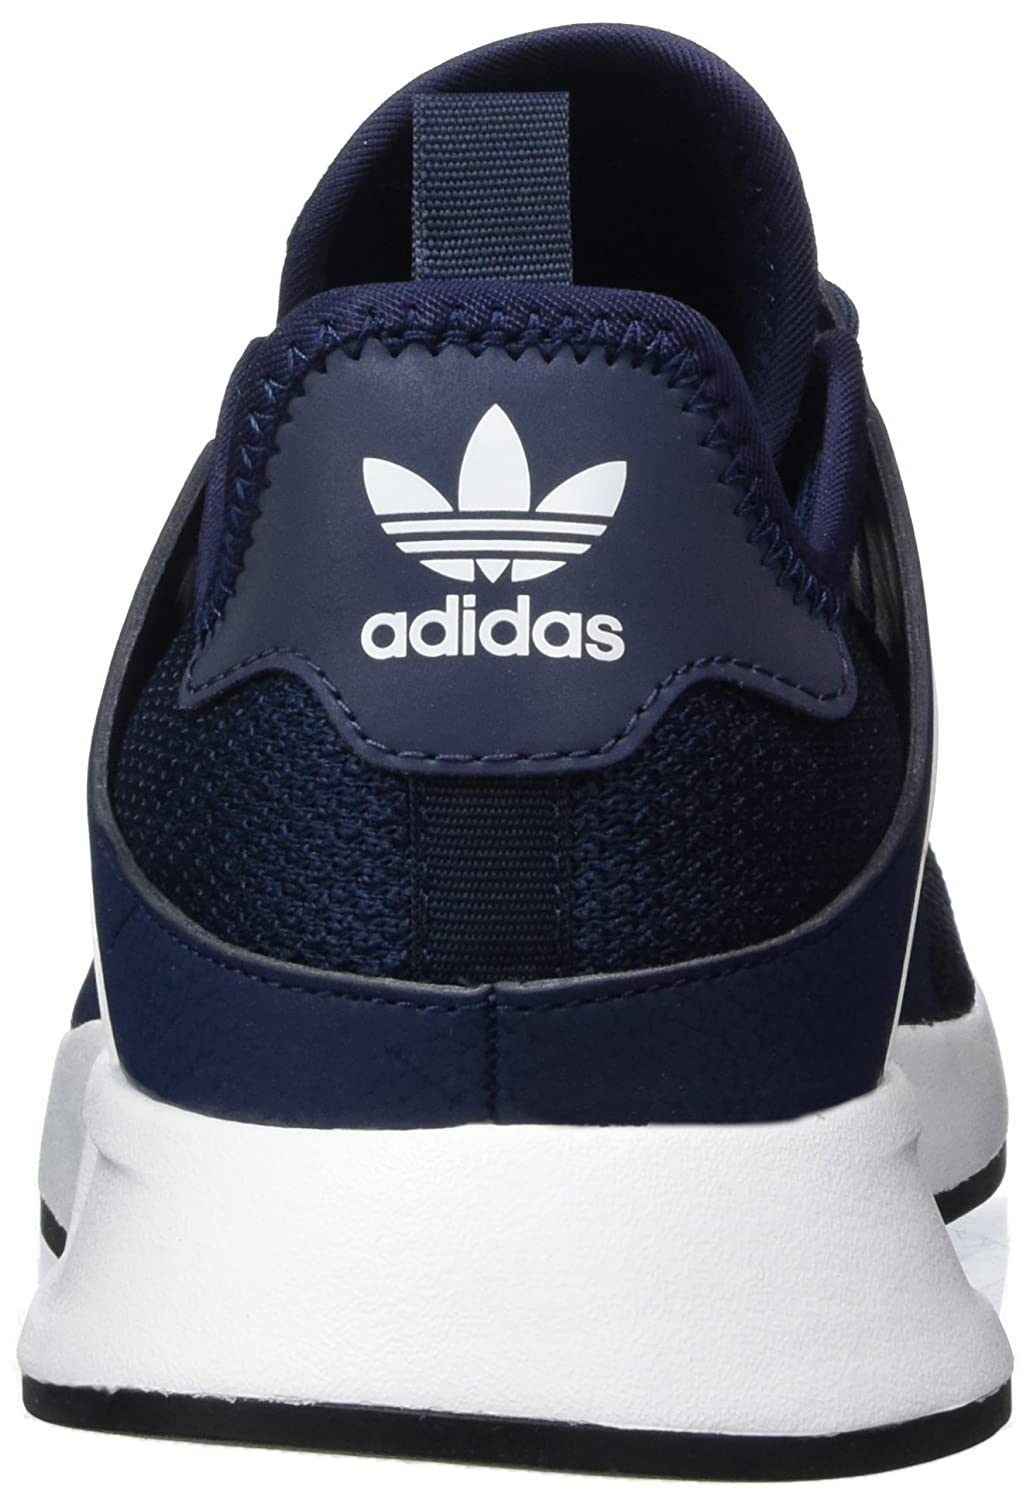 Gentleman/Lady adidas Men's X_PLR Fitness Shoes elegant elegant elegant Highly praised and appreciated by the consumer audience business 32692c